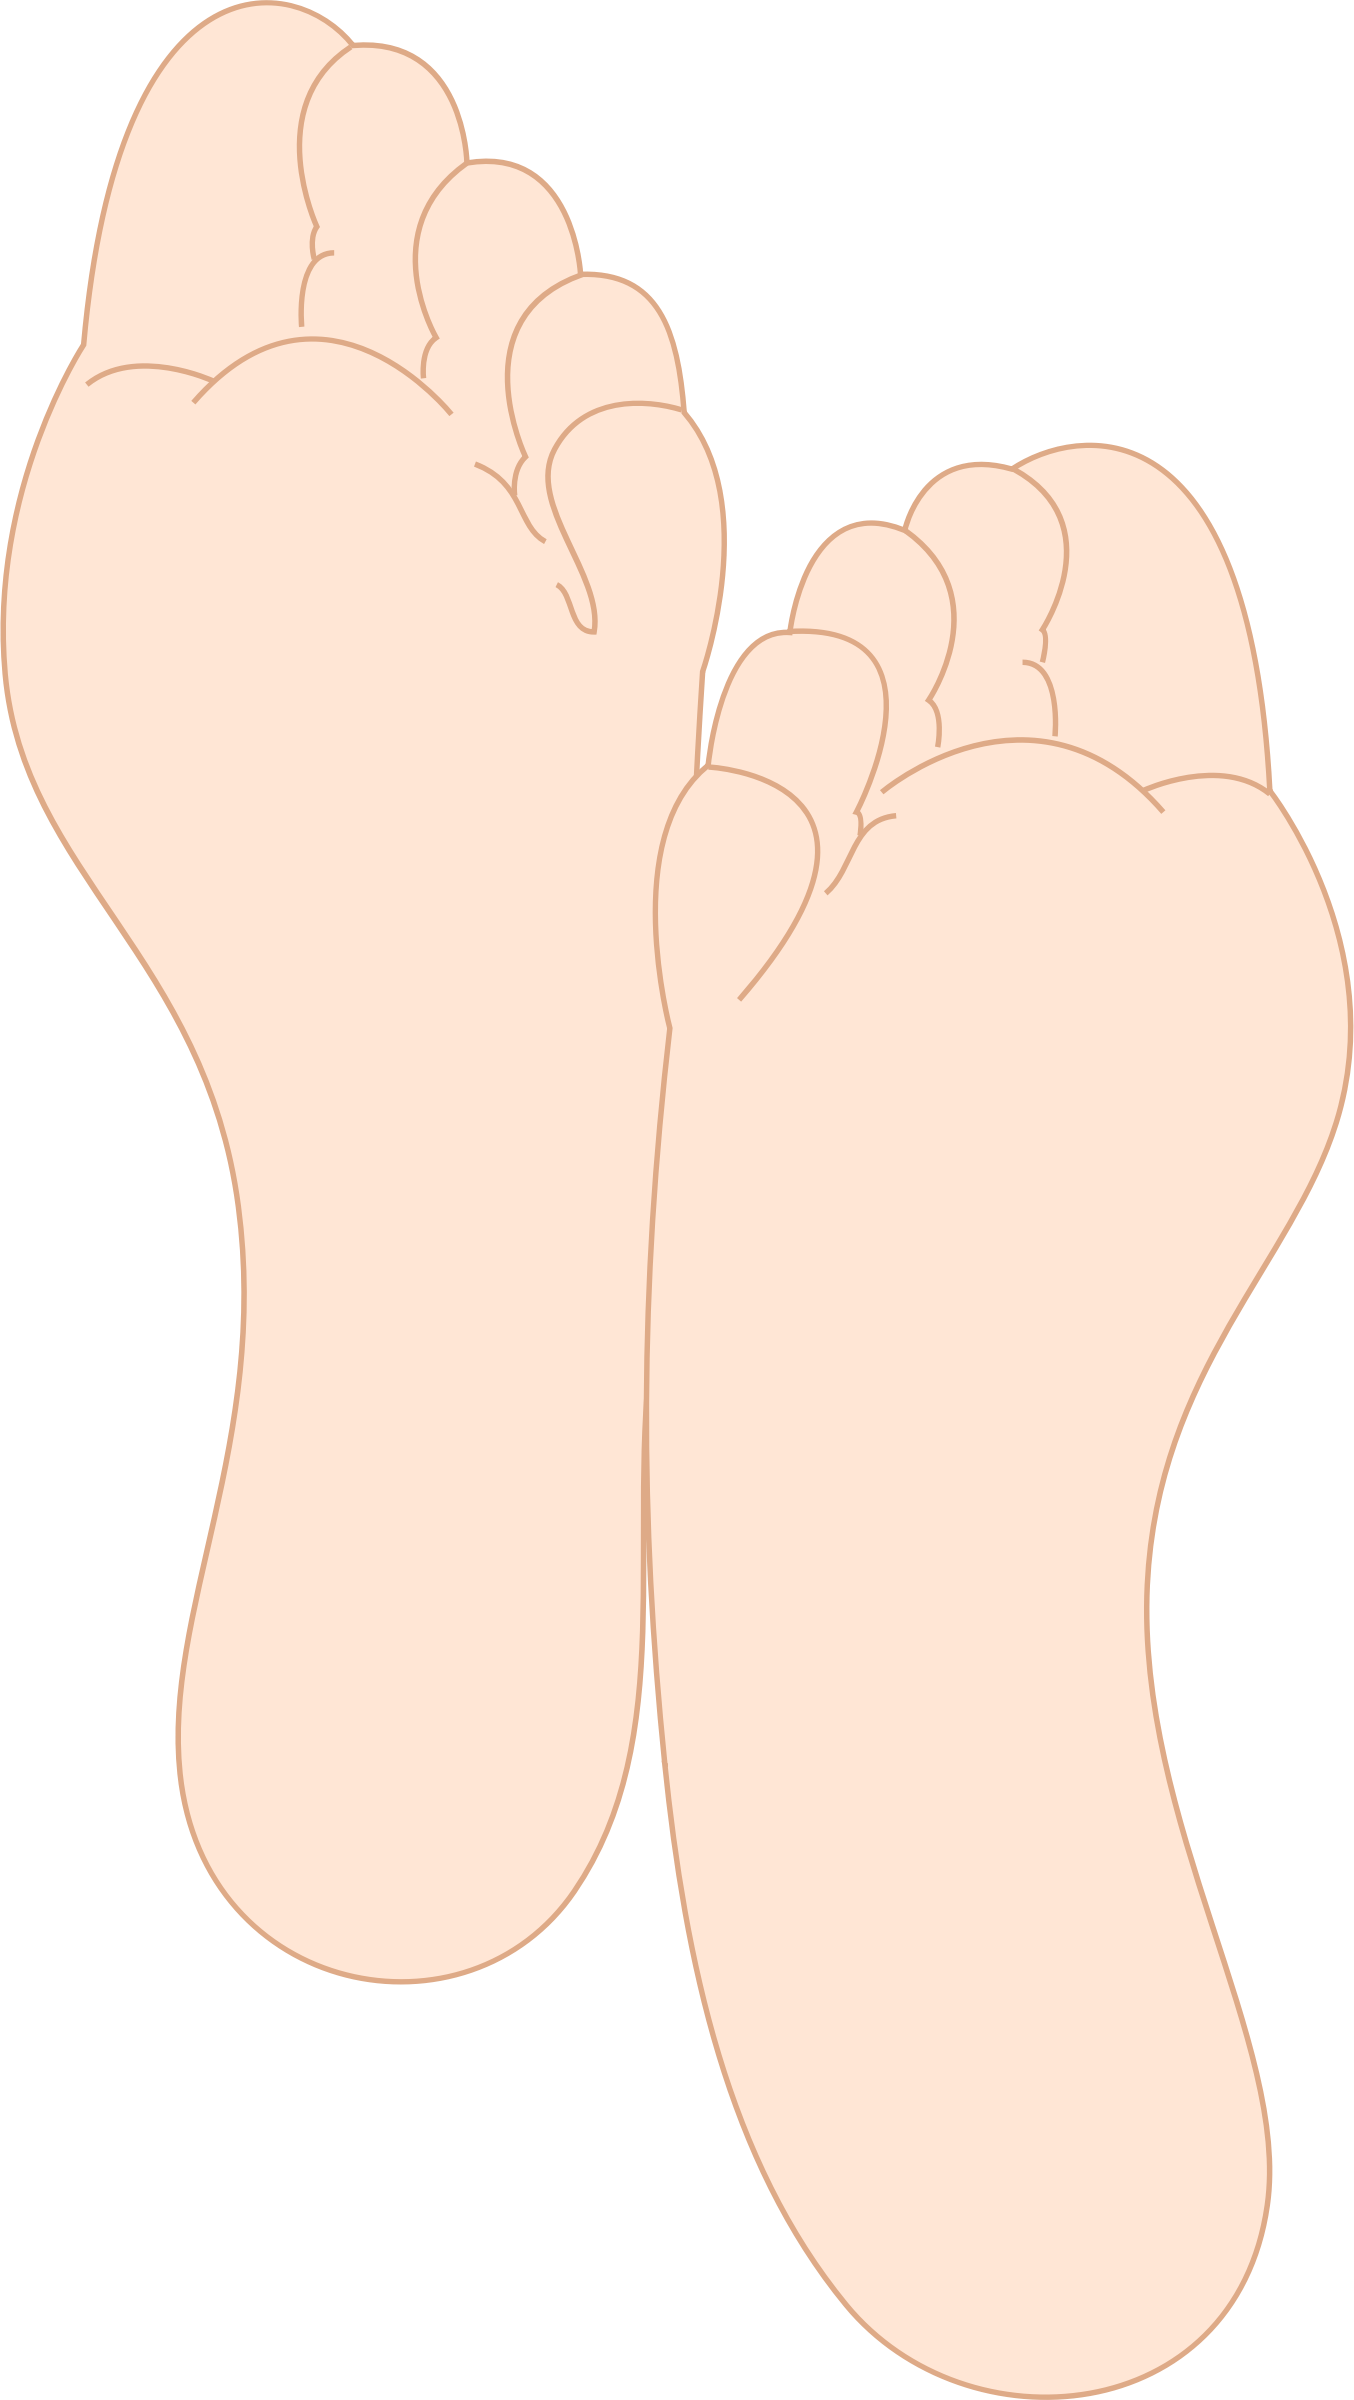 Transparent foot soles. Feet icons png free